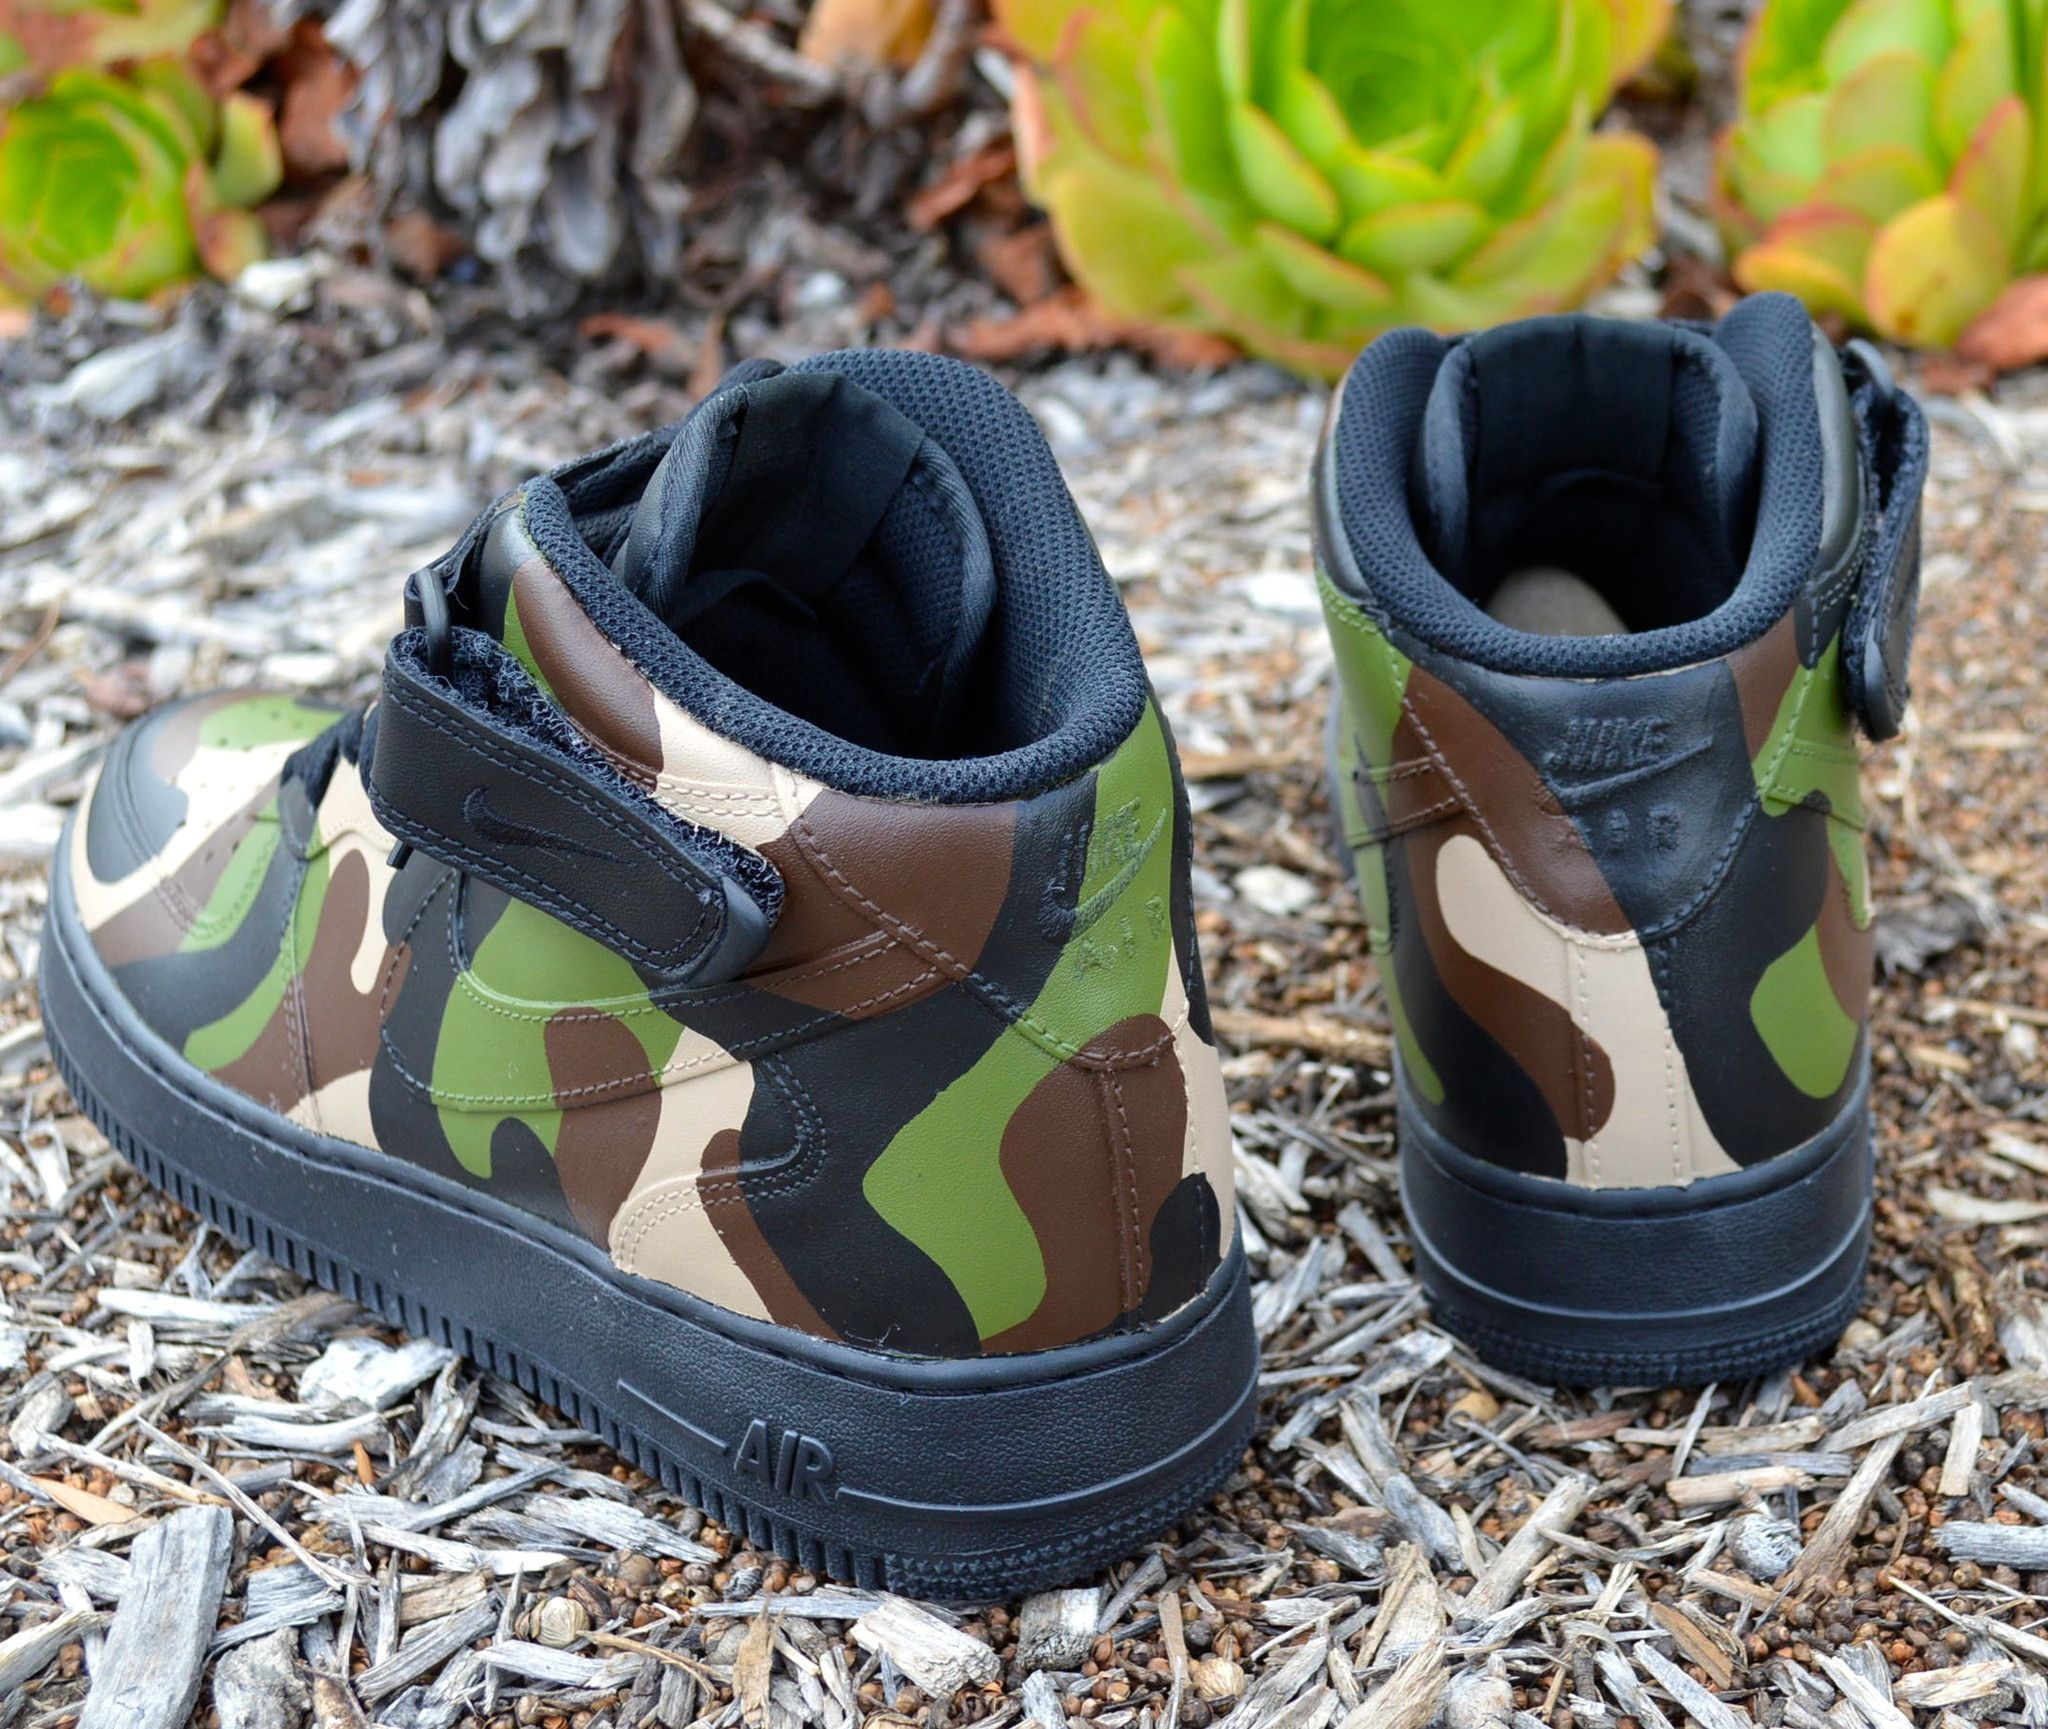 These Nike Air Force 1 Mids have a hand painted camo print